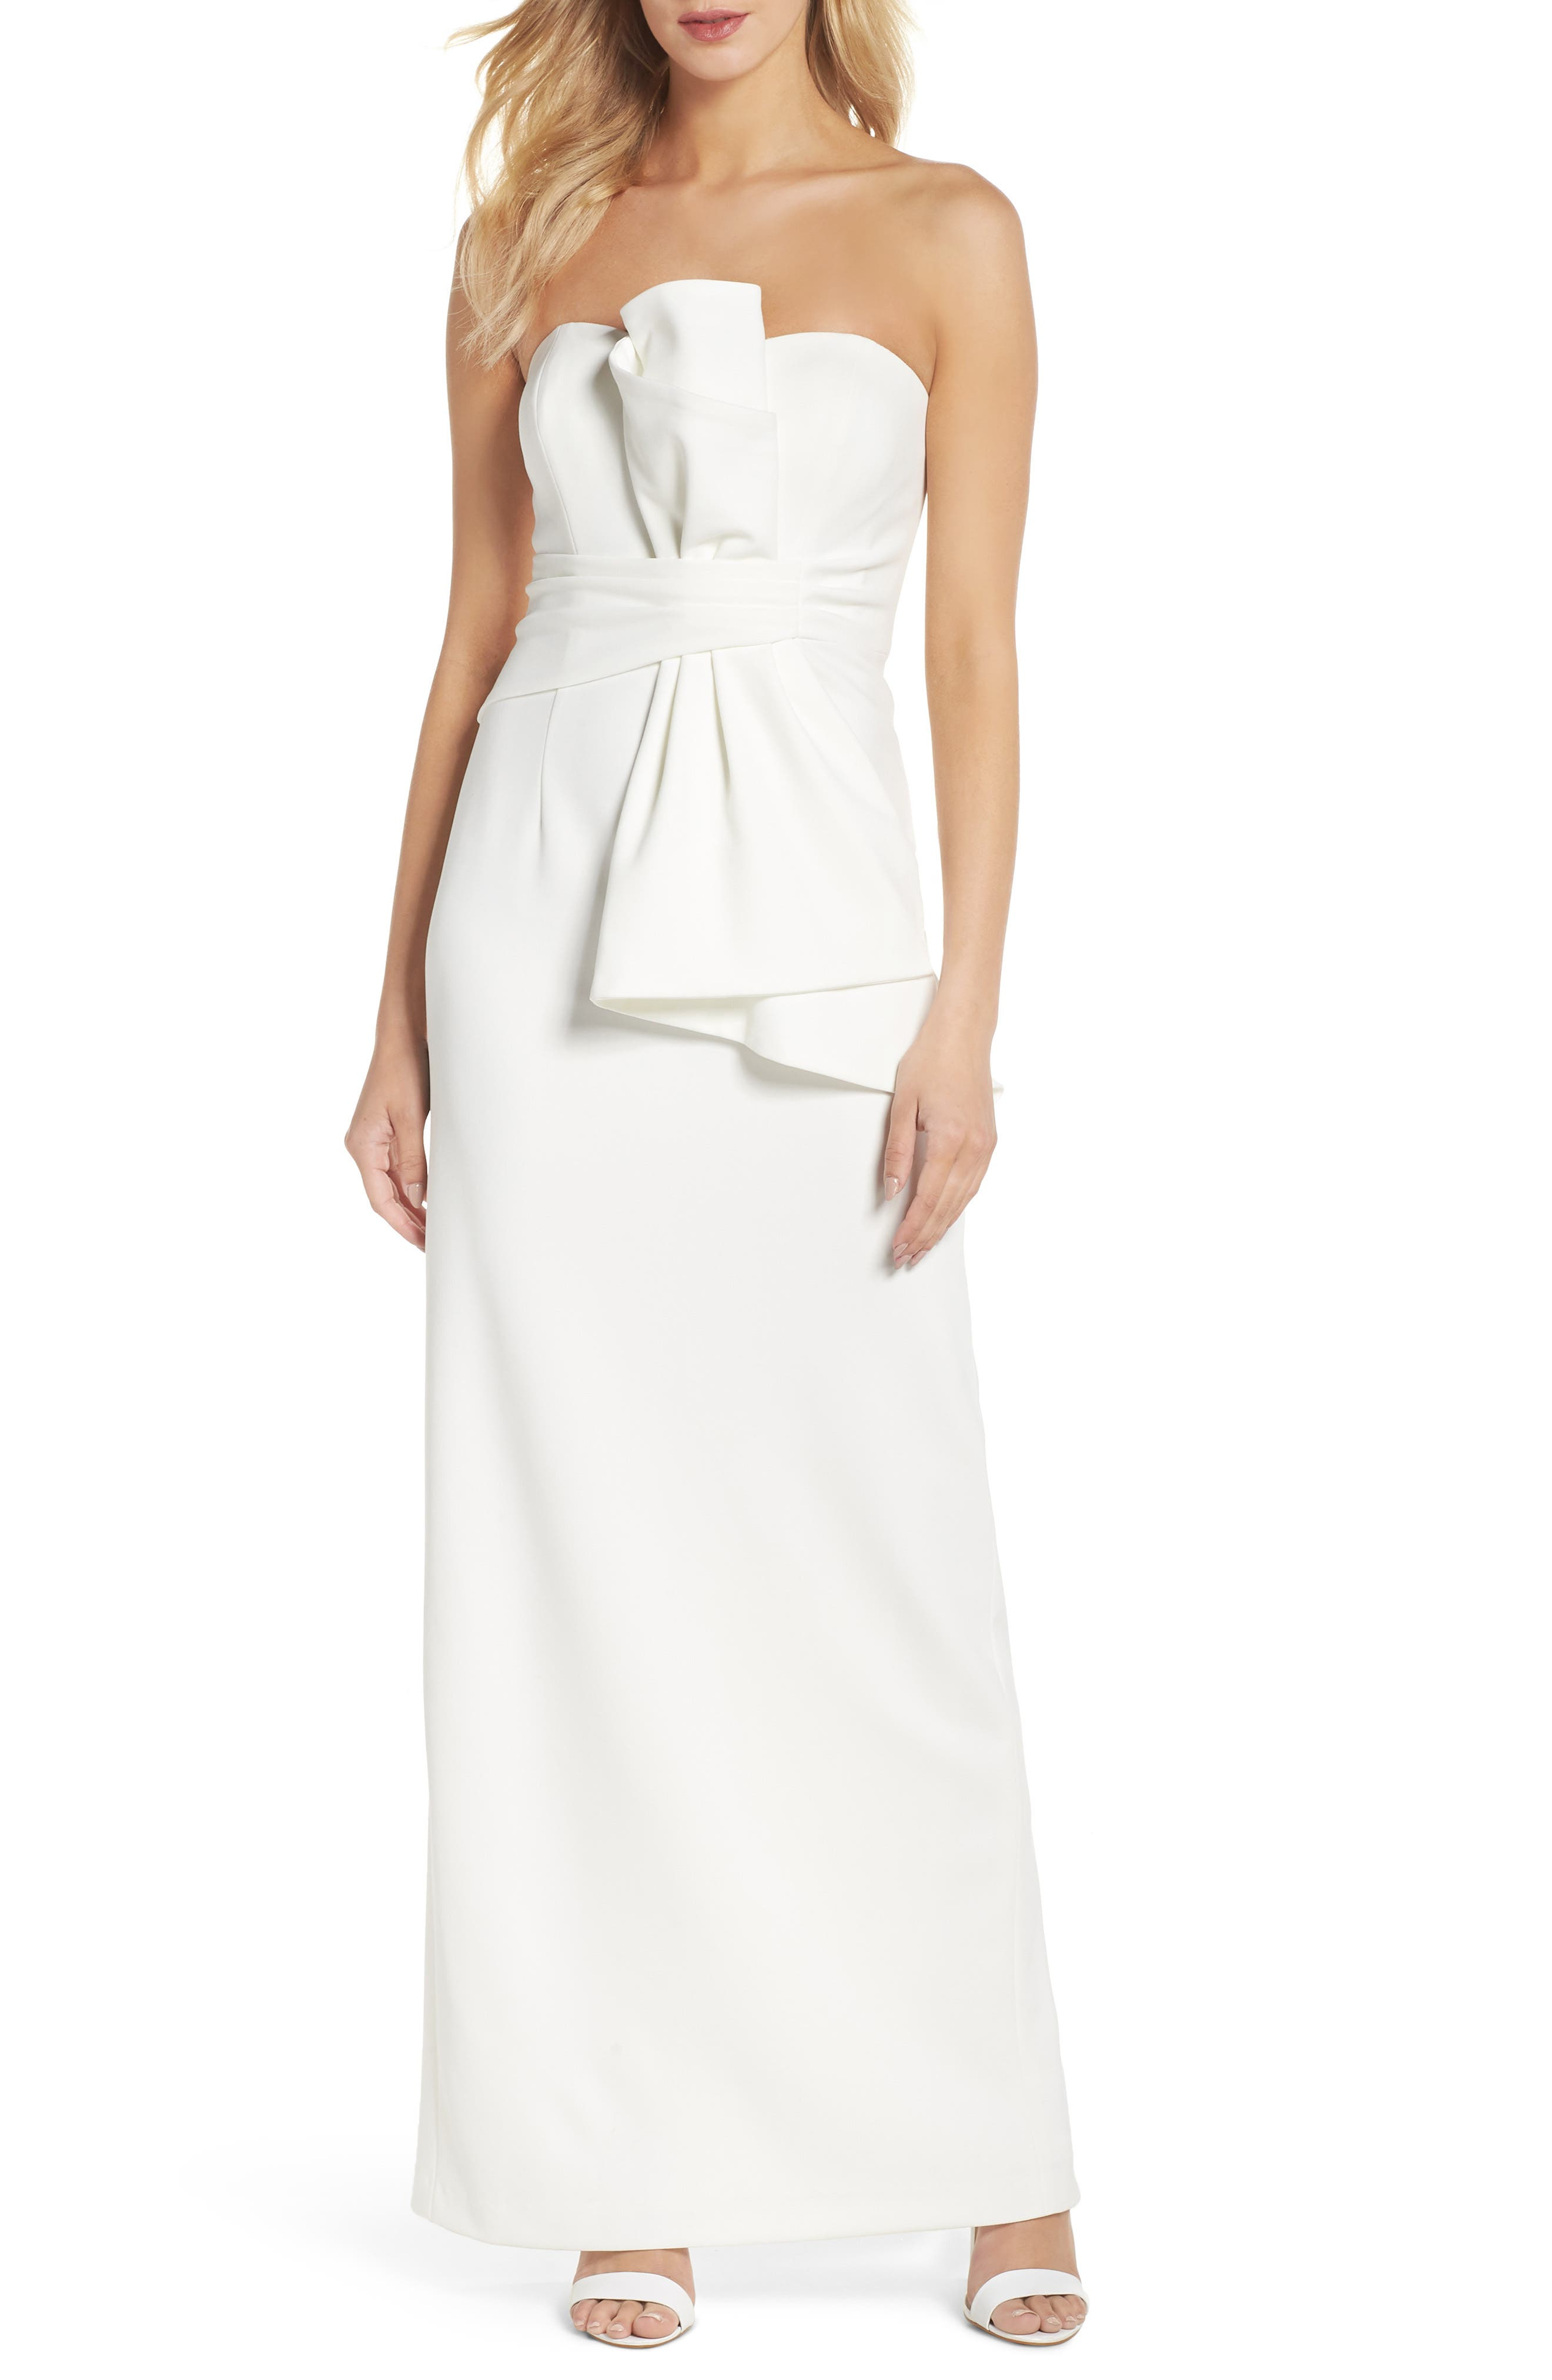 Adrianna Papell Strapless Bow Column Gown (Regular & Petite)